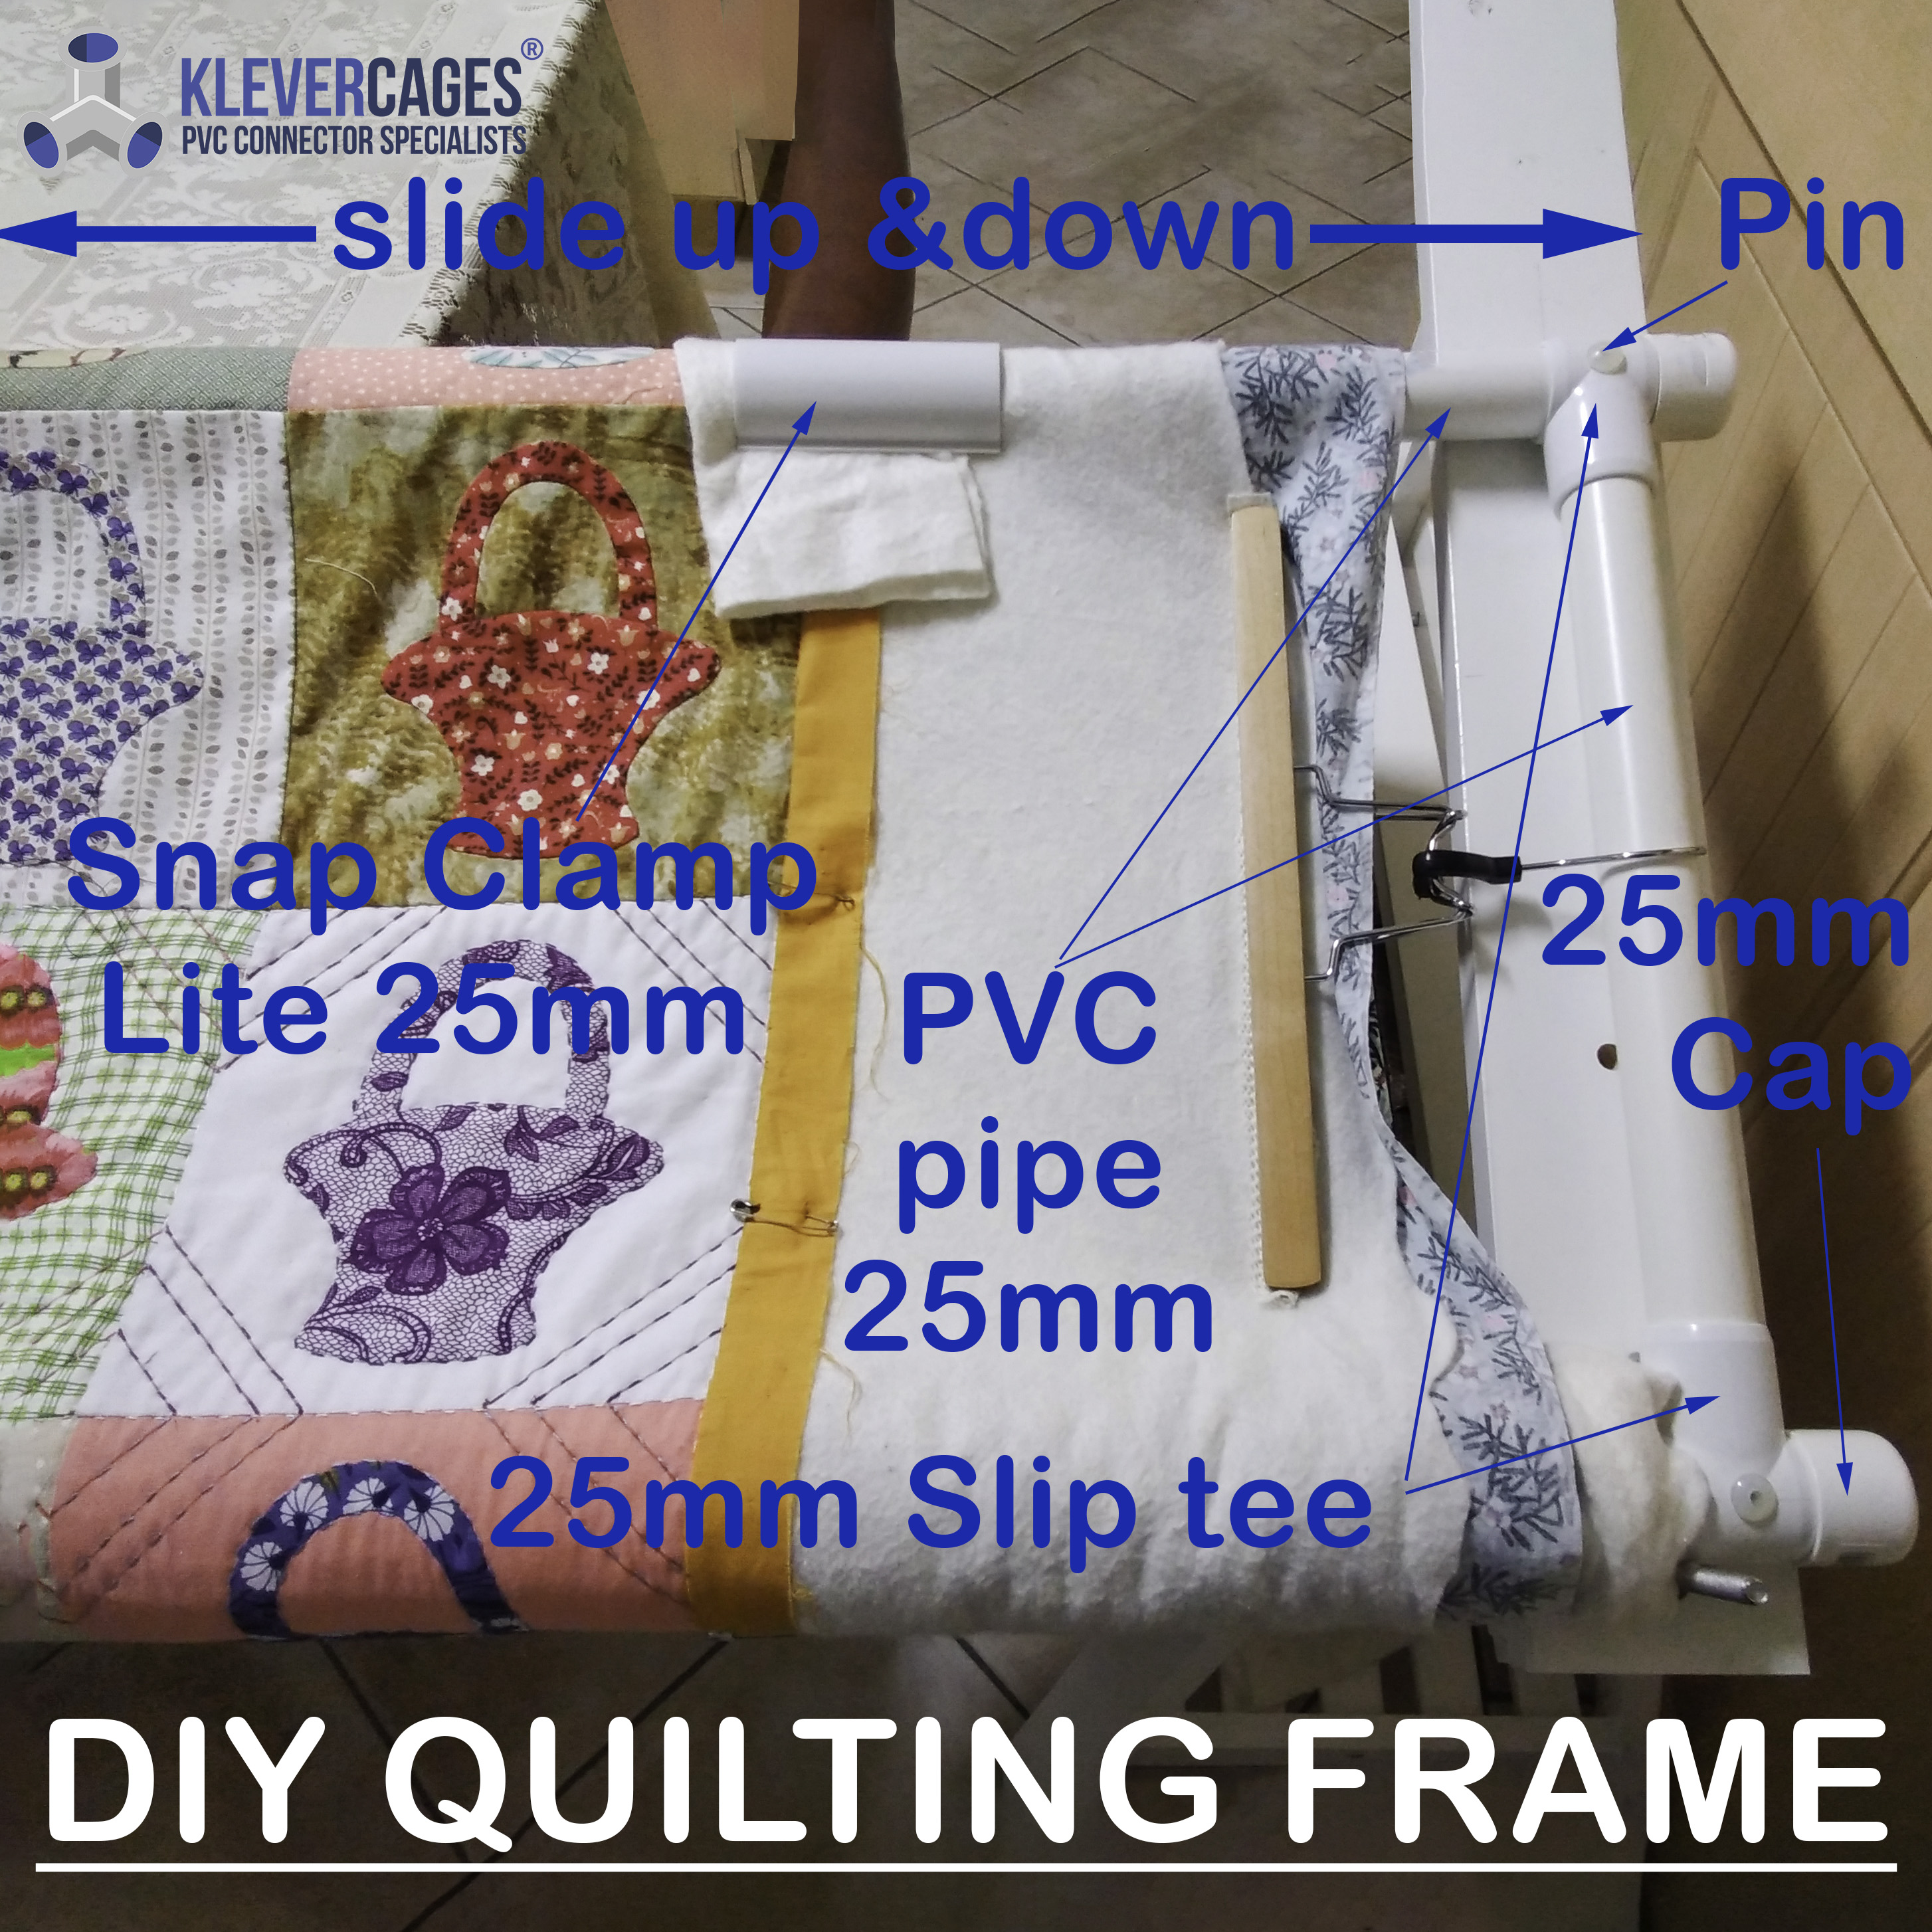 diy-quilting-frame-built-with-pvc-pipe-and-connector-fittings-from-klever-cages.jpg